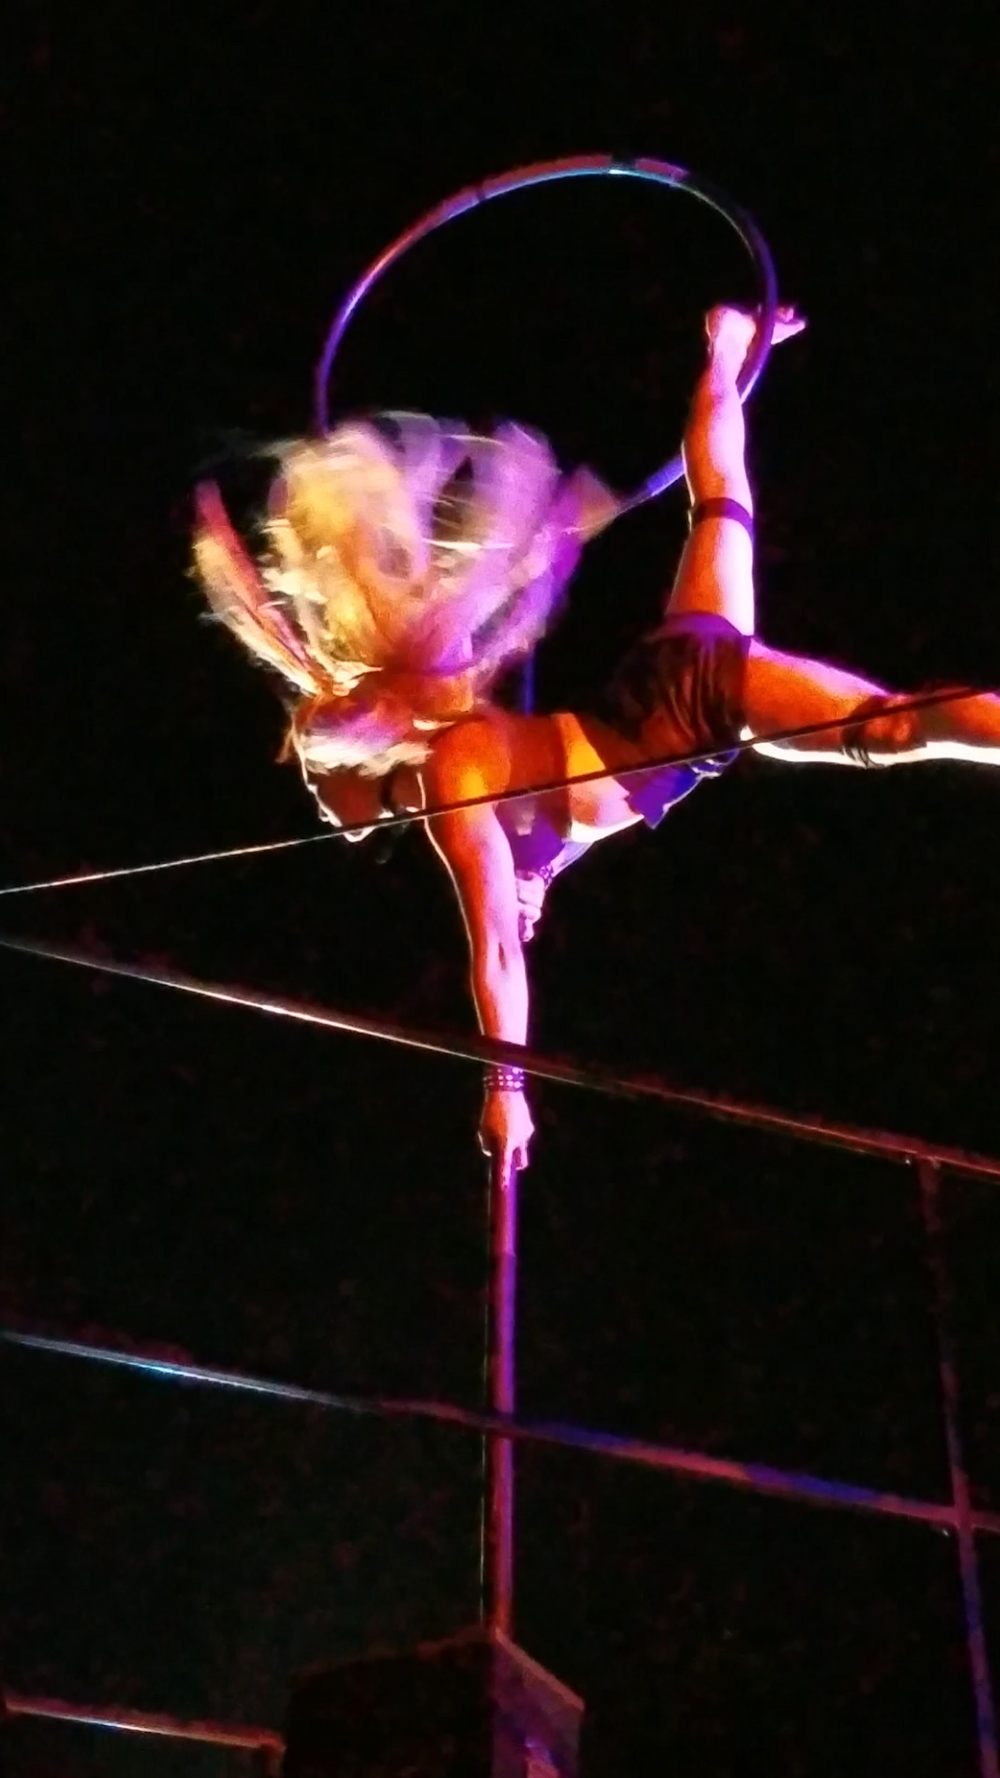 This photo is Jeanette performing in the Blood Yard at California's Great America Halloween Haunt in 2019.